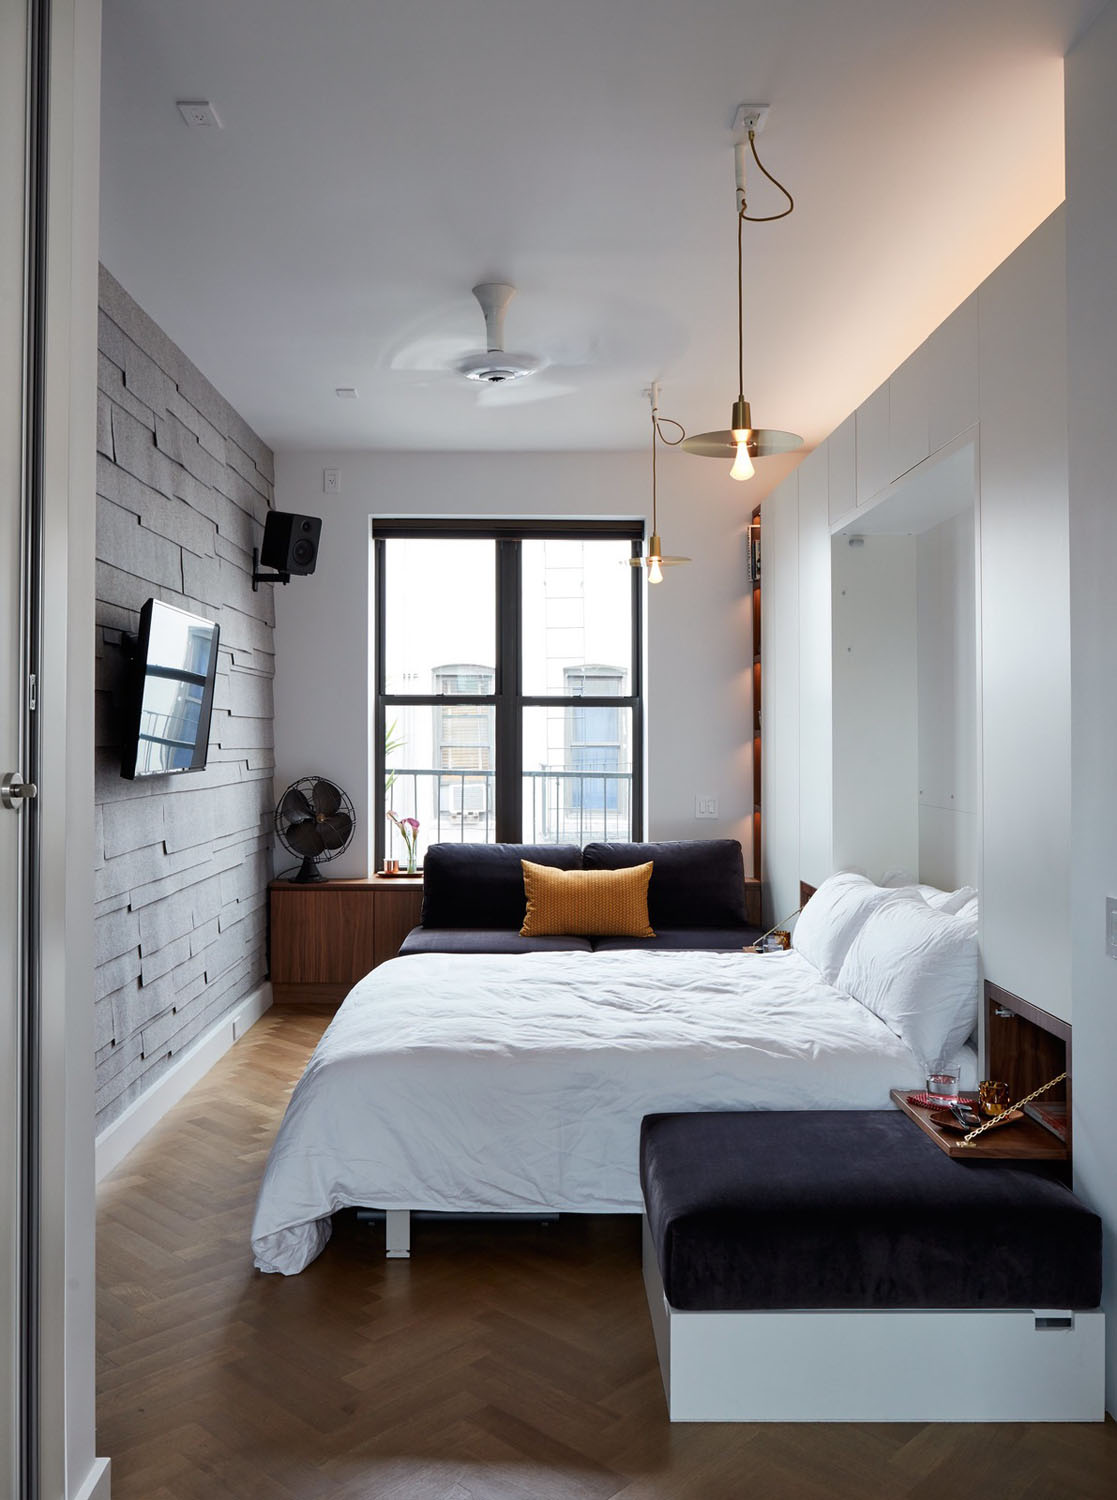 Tiny 350 Square Foot Smart Apartment In New York City  iDesignArch  Interior Design